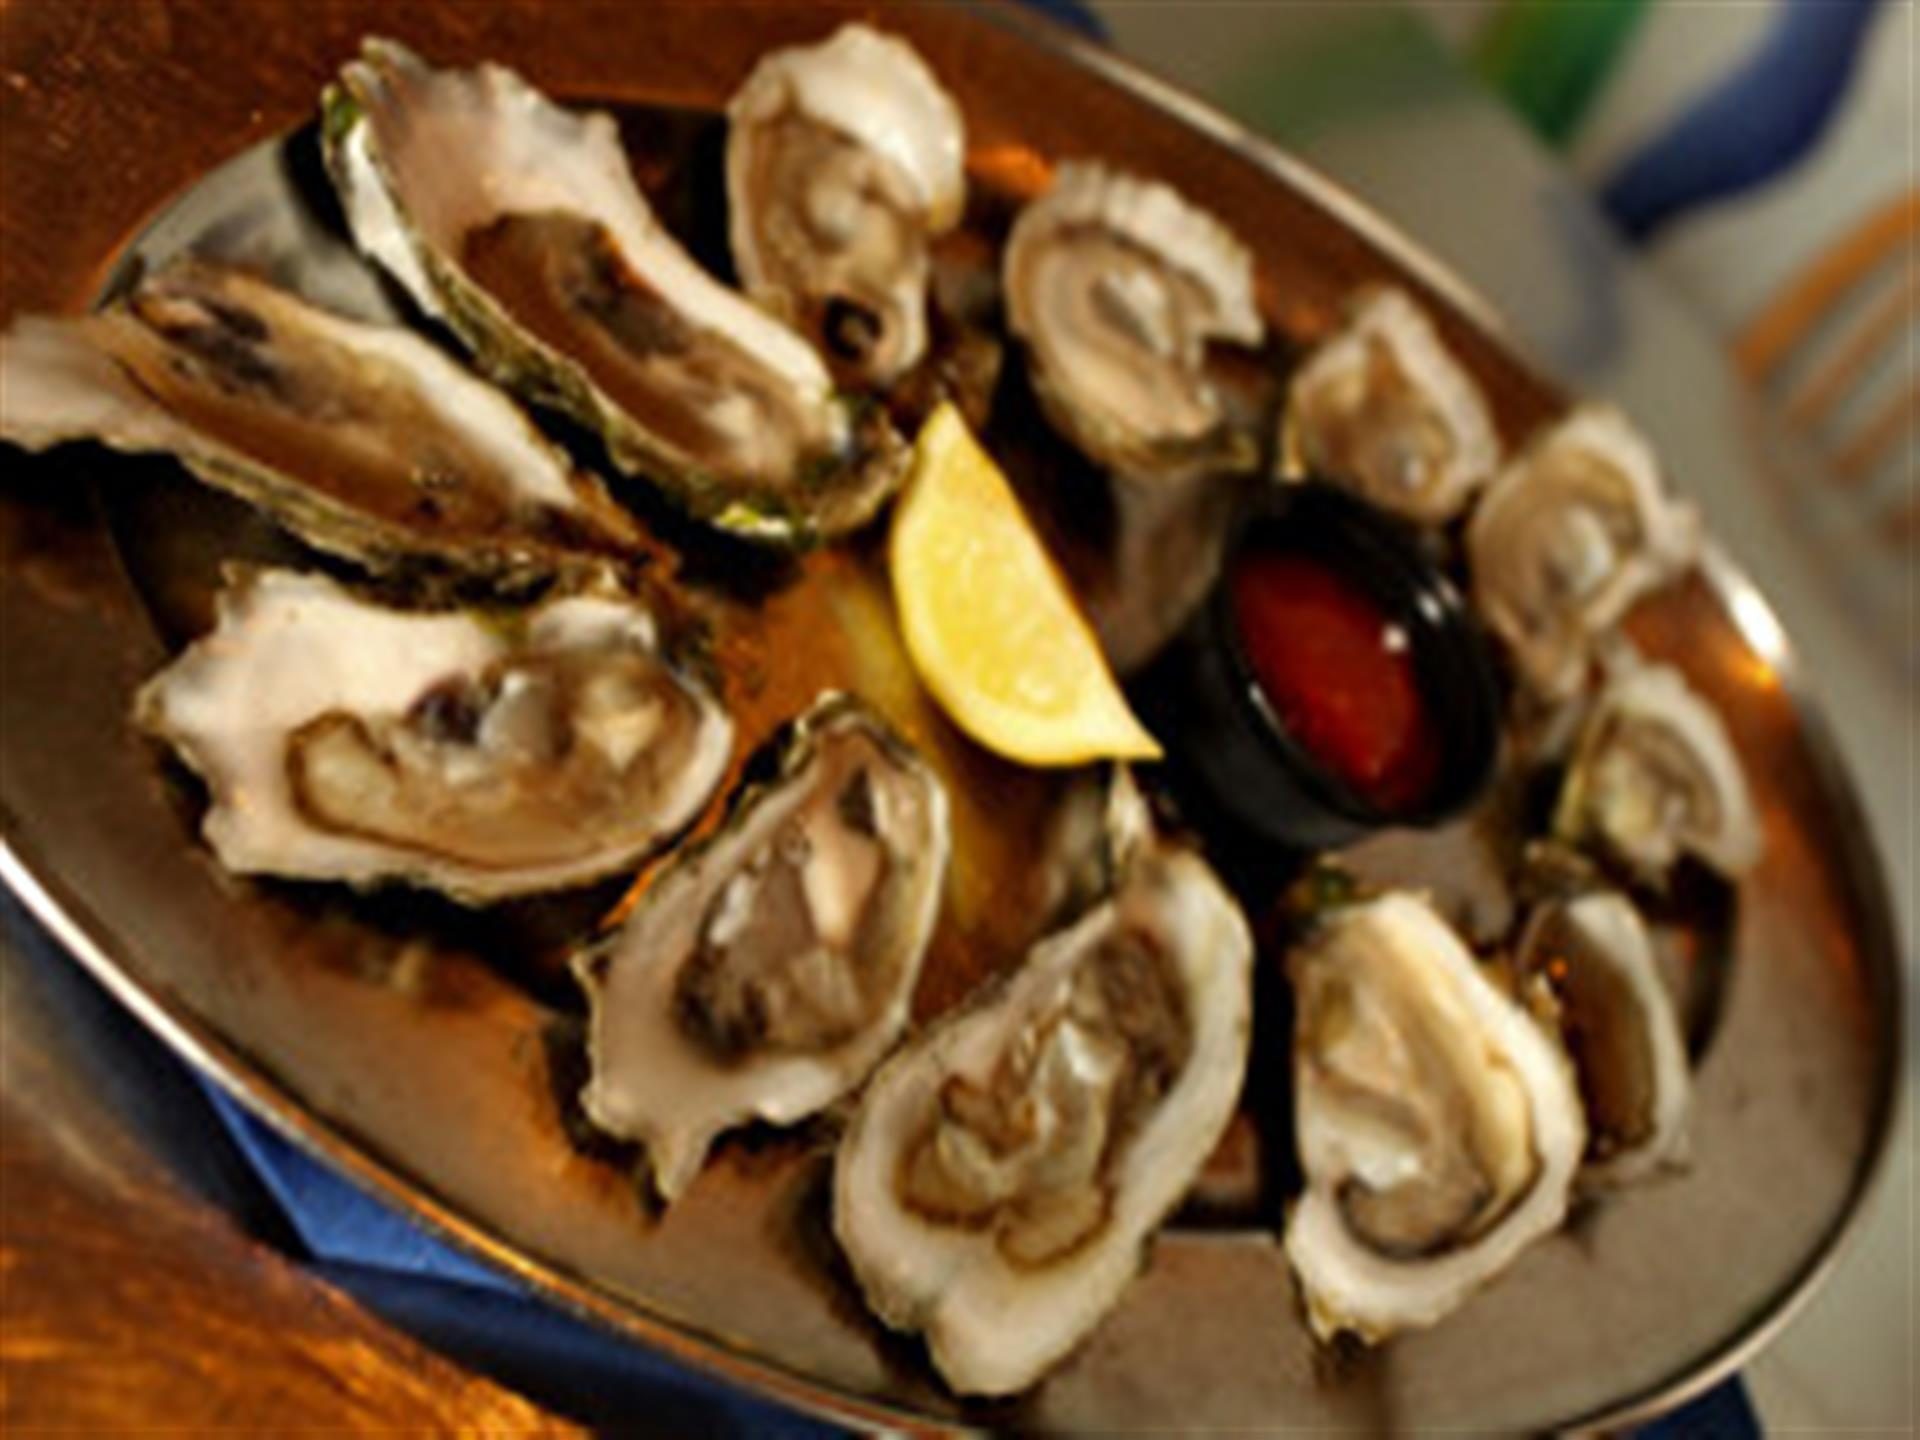 Oysters on the half shell with lemon